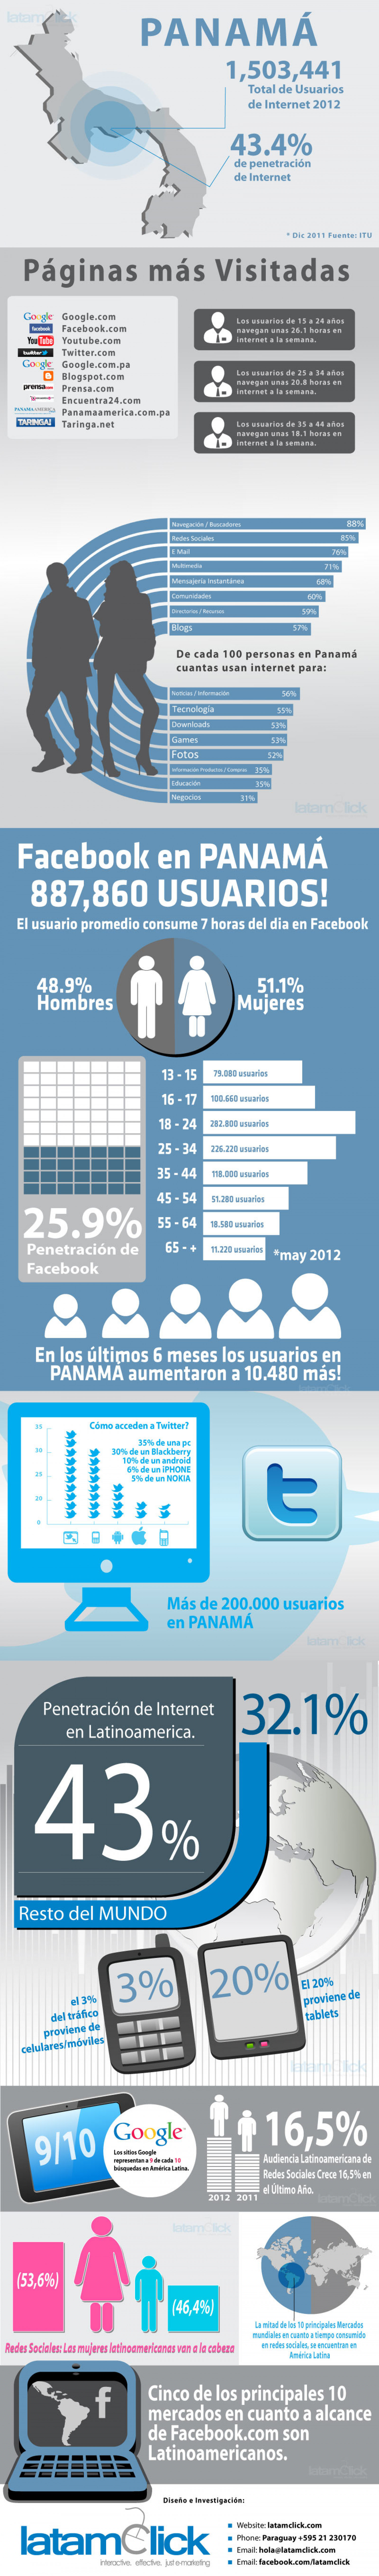 Panamá Digital Infographic